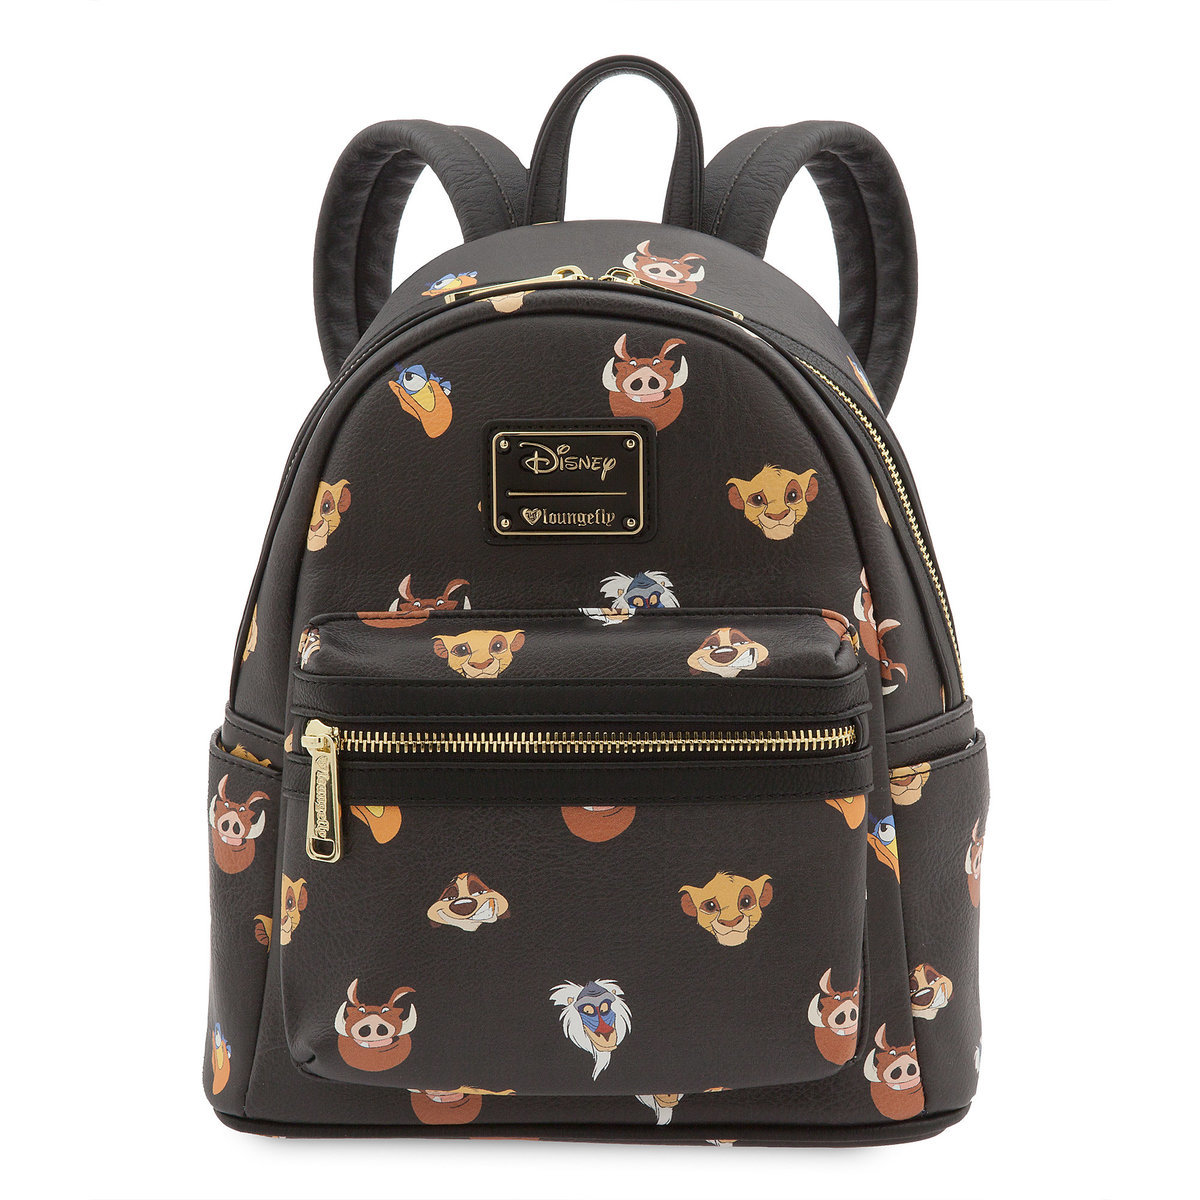 0c9e9bfeae6b2 Product Image of The Lion King Mini Backpack by Loungefly   1